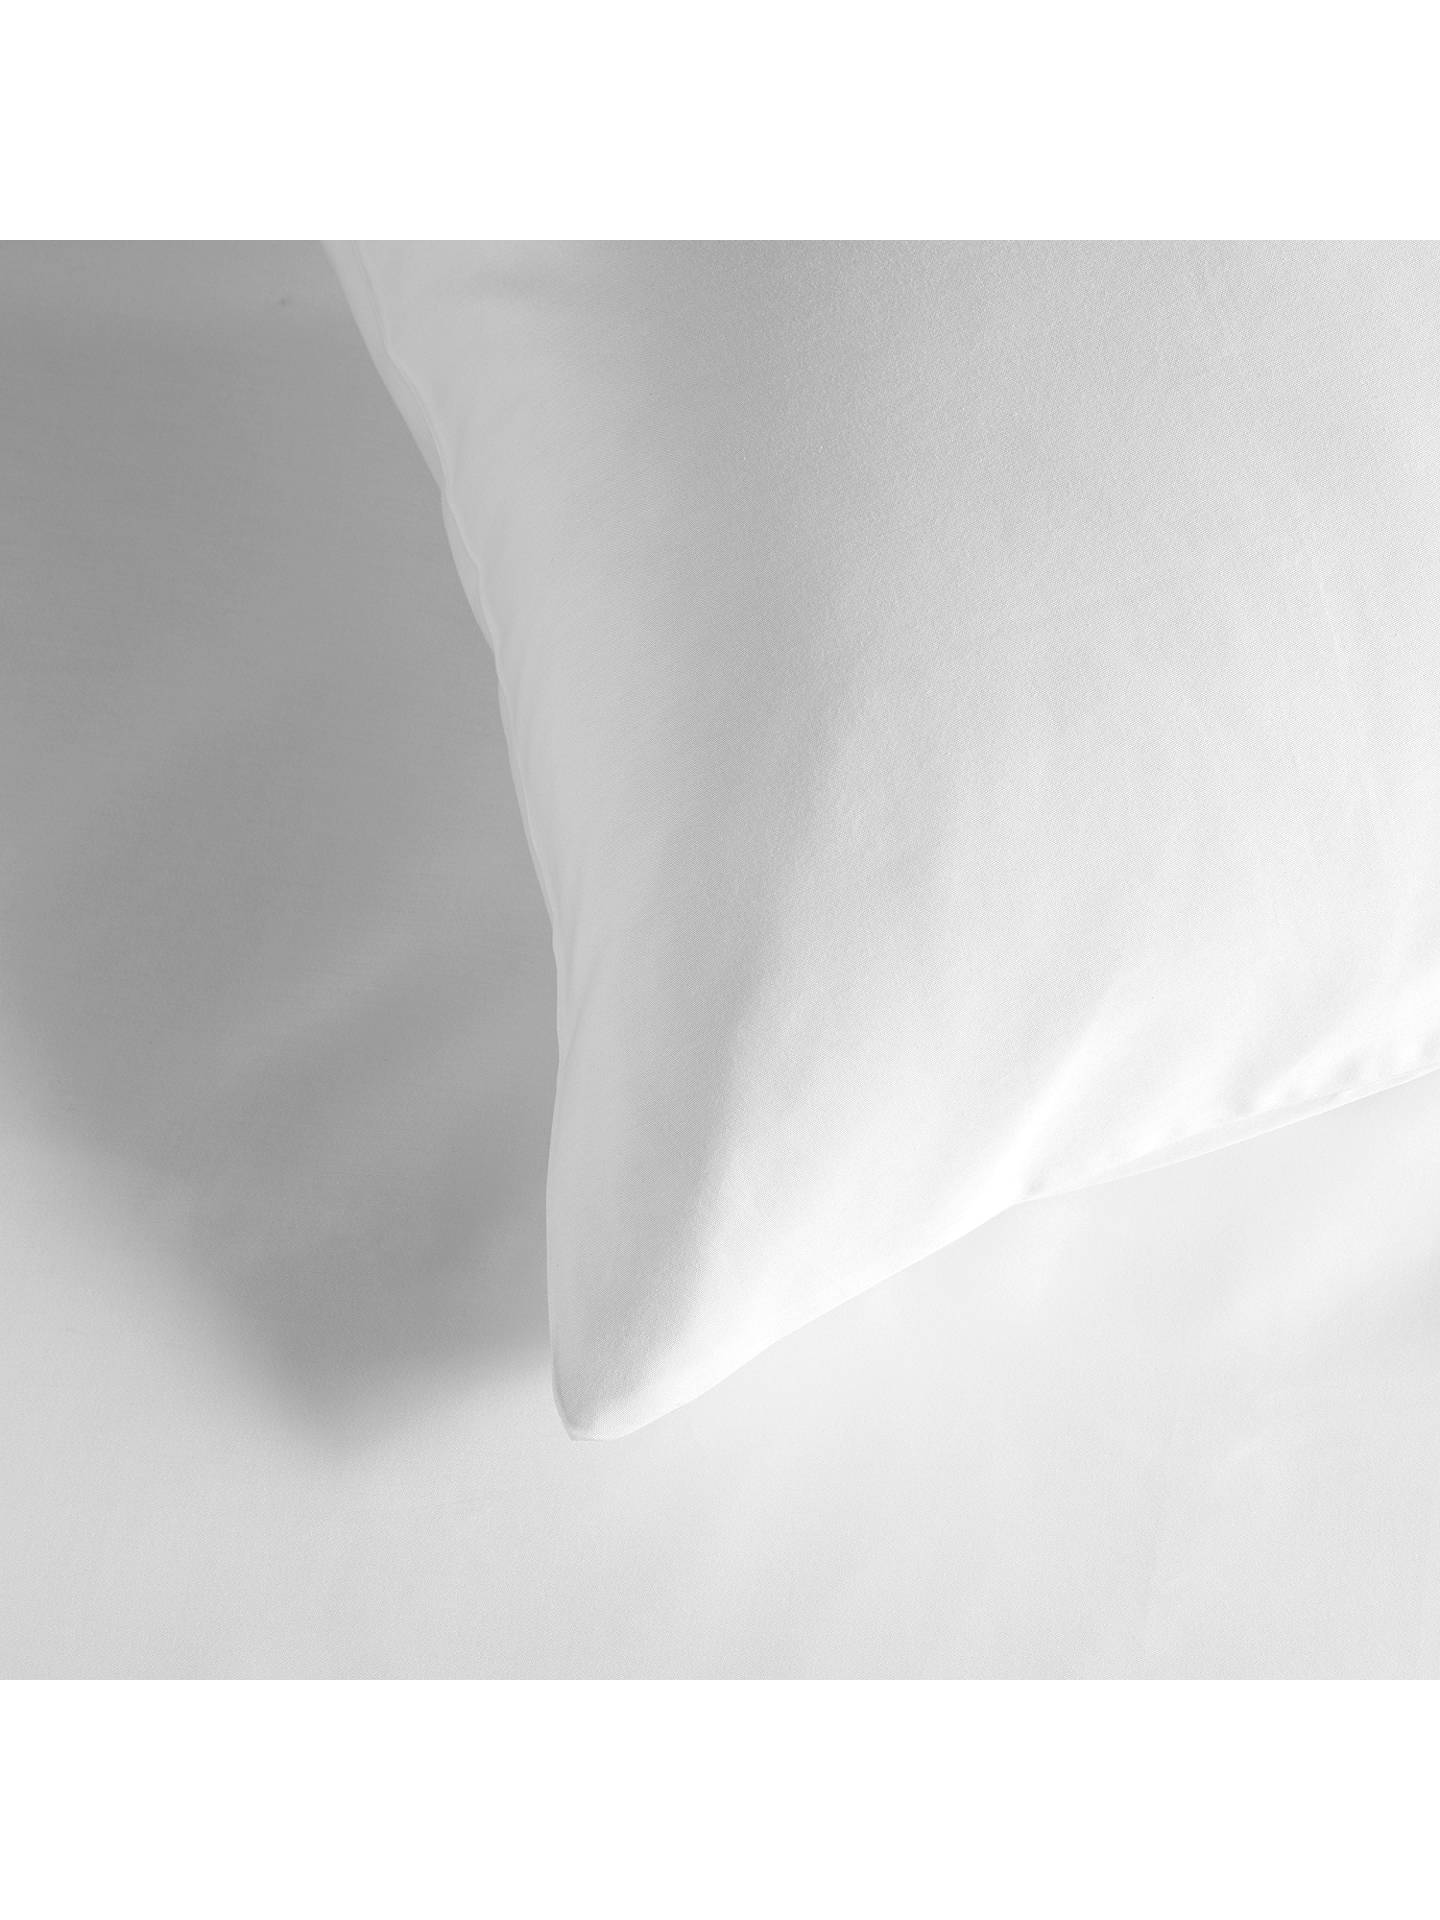 Buy John Lewis & Partners Crisp & Fresh Egyptian Cotton 800 Thread Count Flat Sheet, Emperor, White Online at johnlewis.com